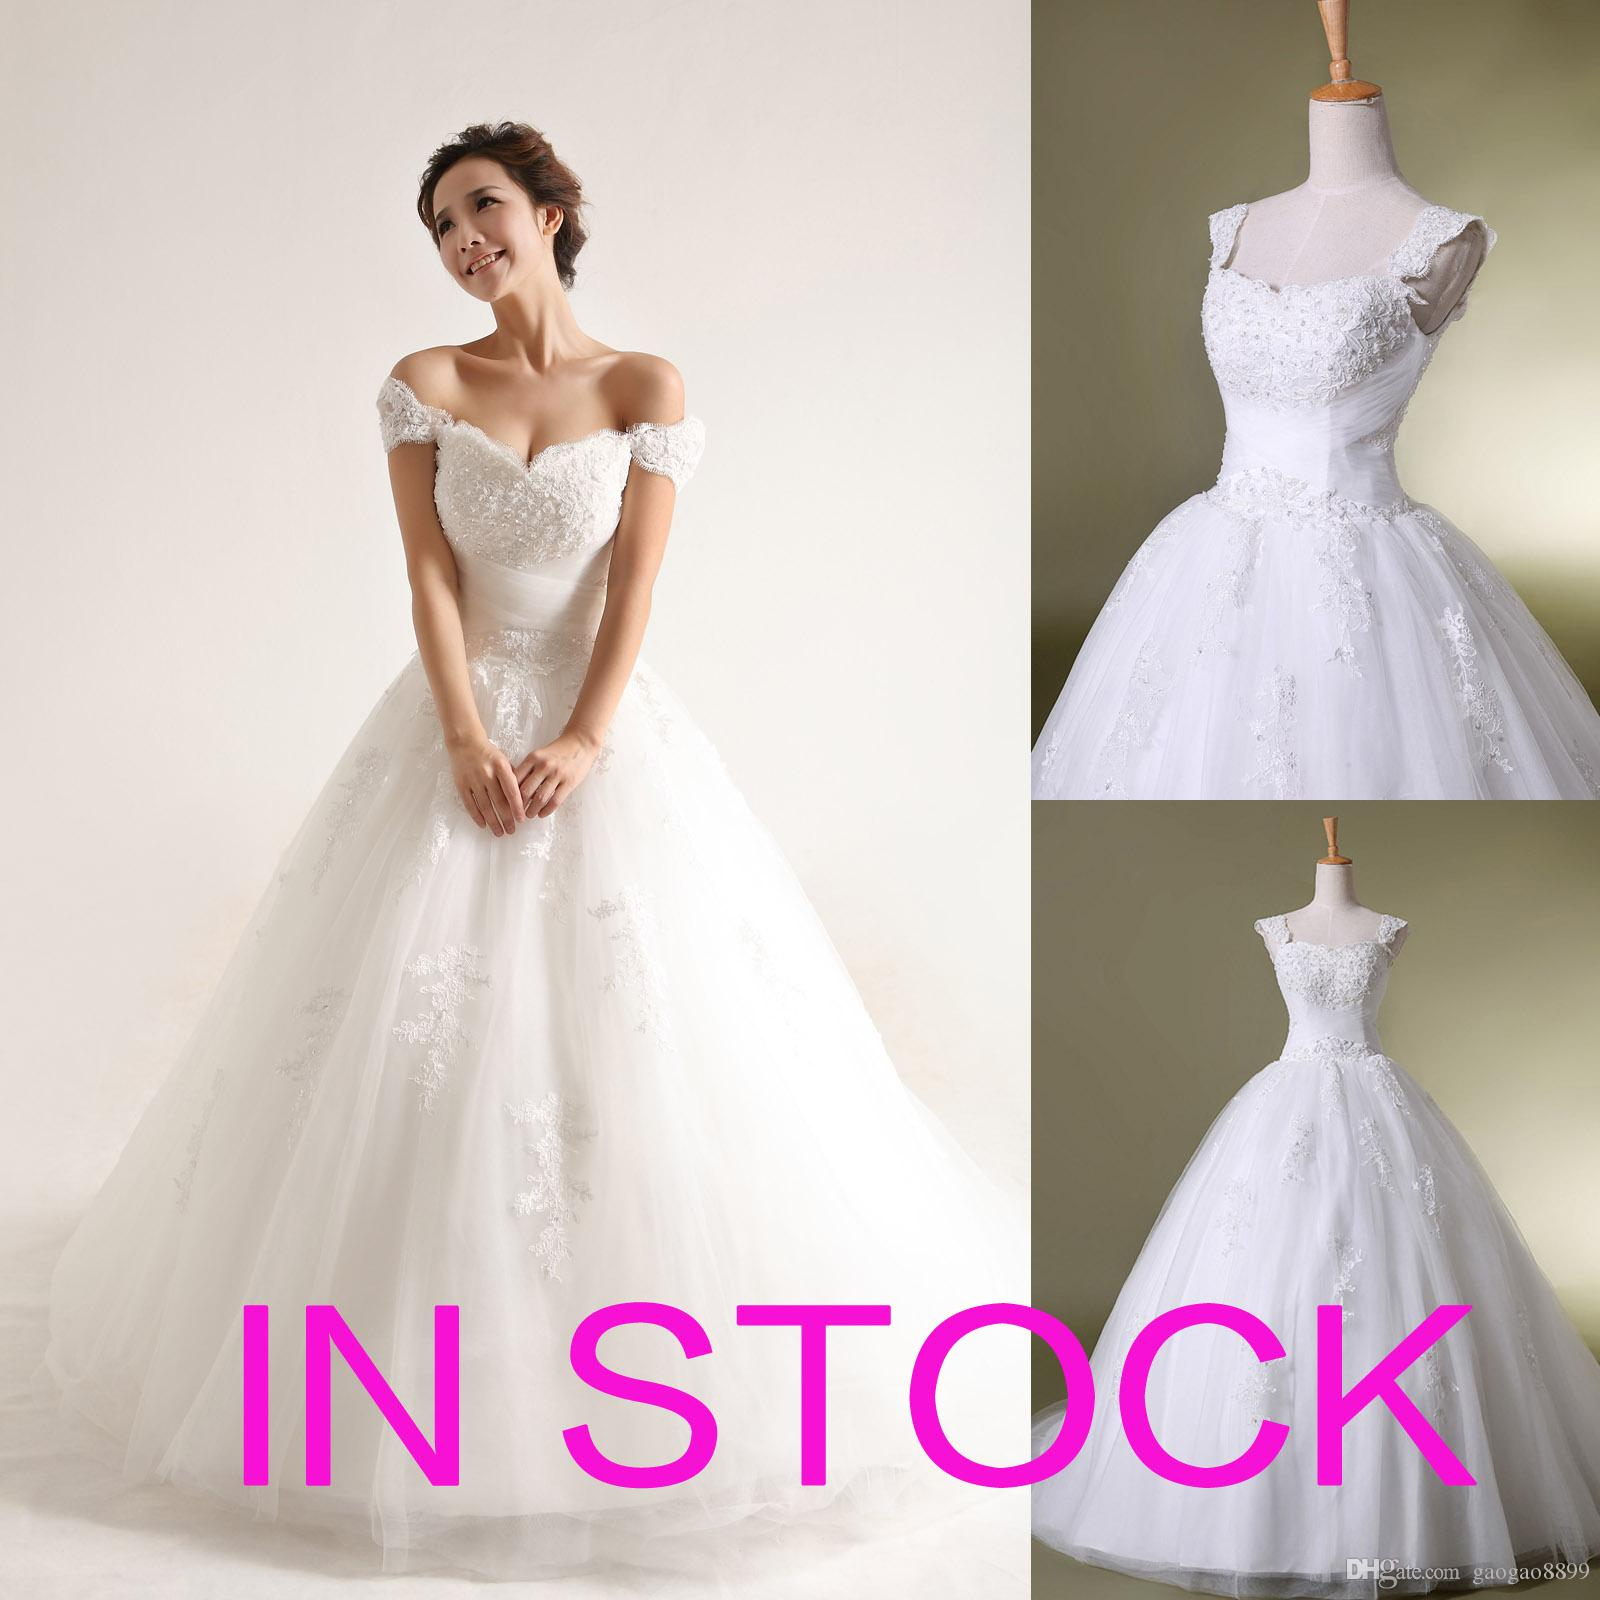 Pretty Clearance Ball Gowns Gallery - Images for wedding gown ideas ...